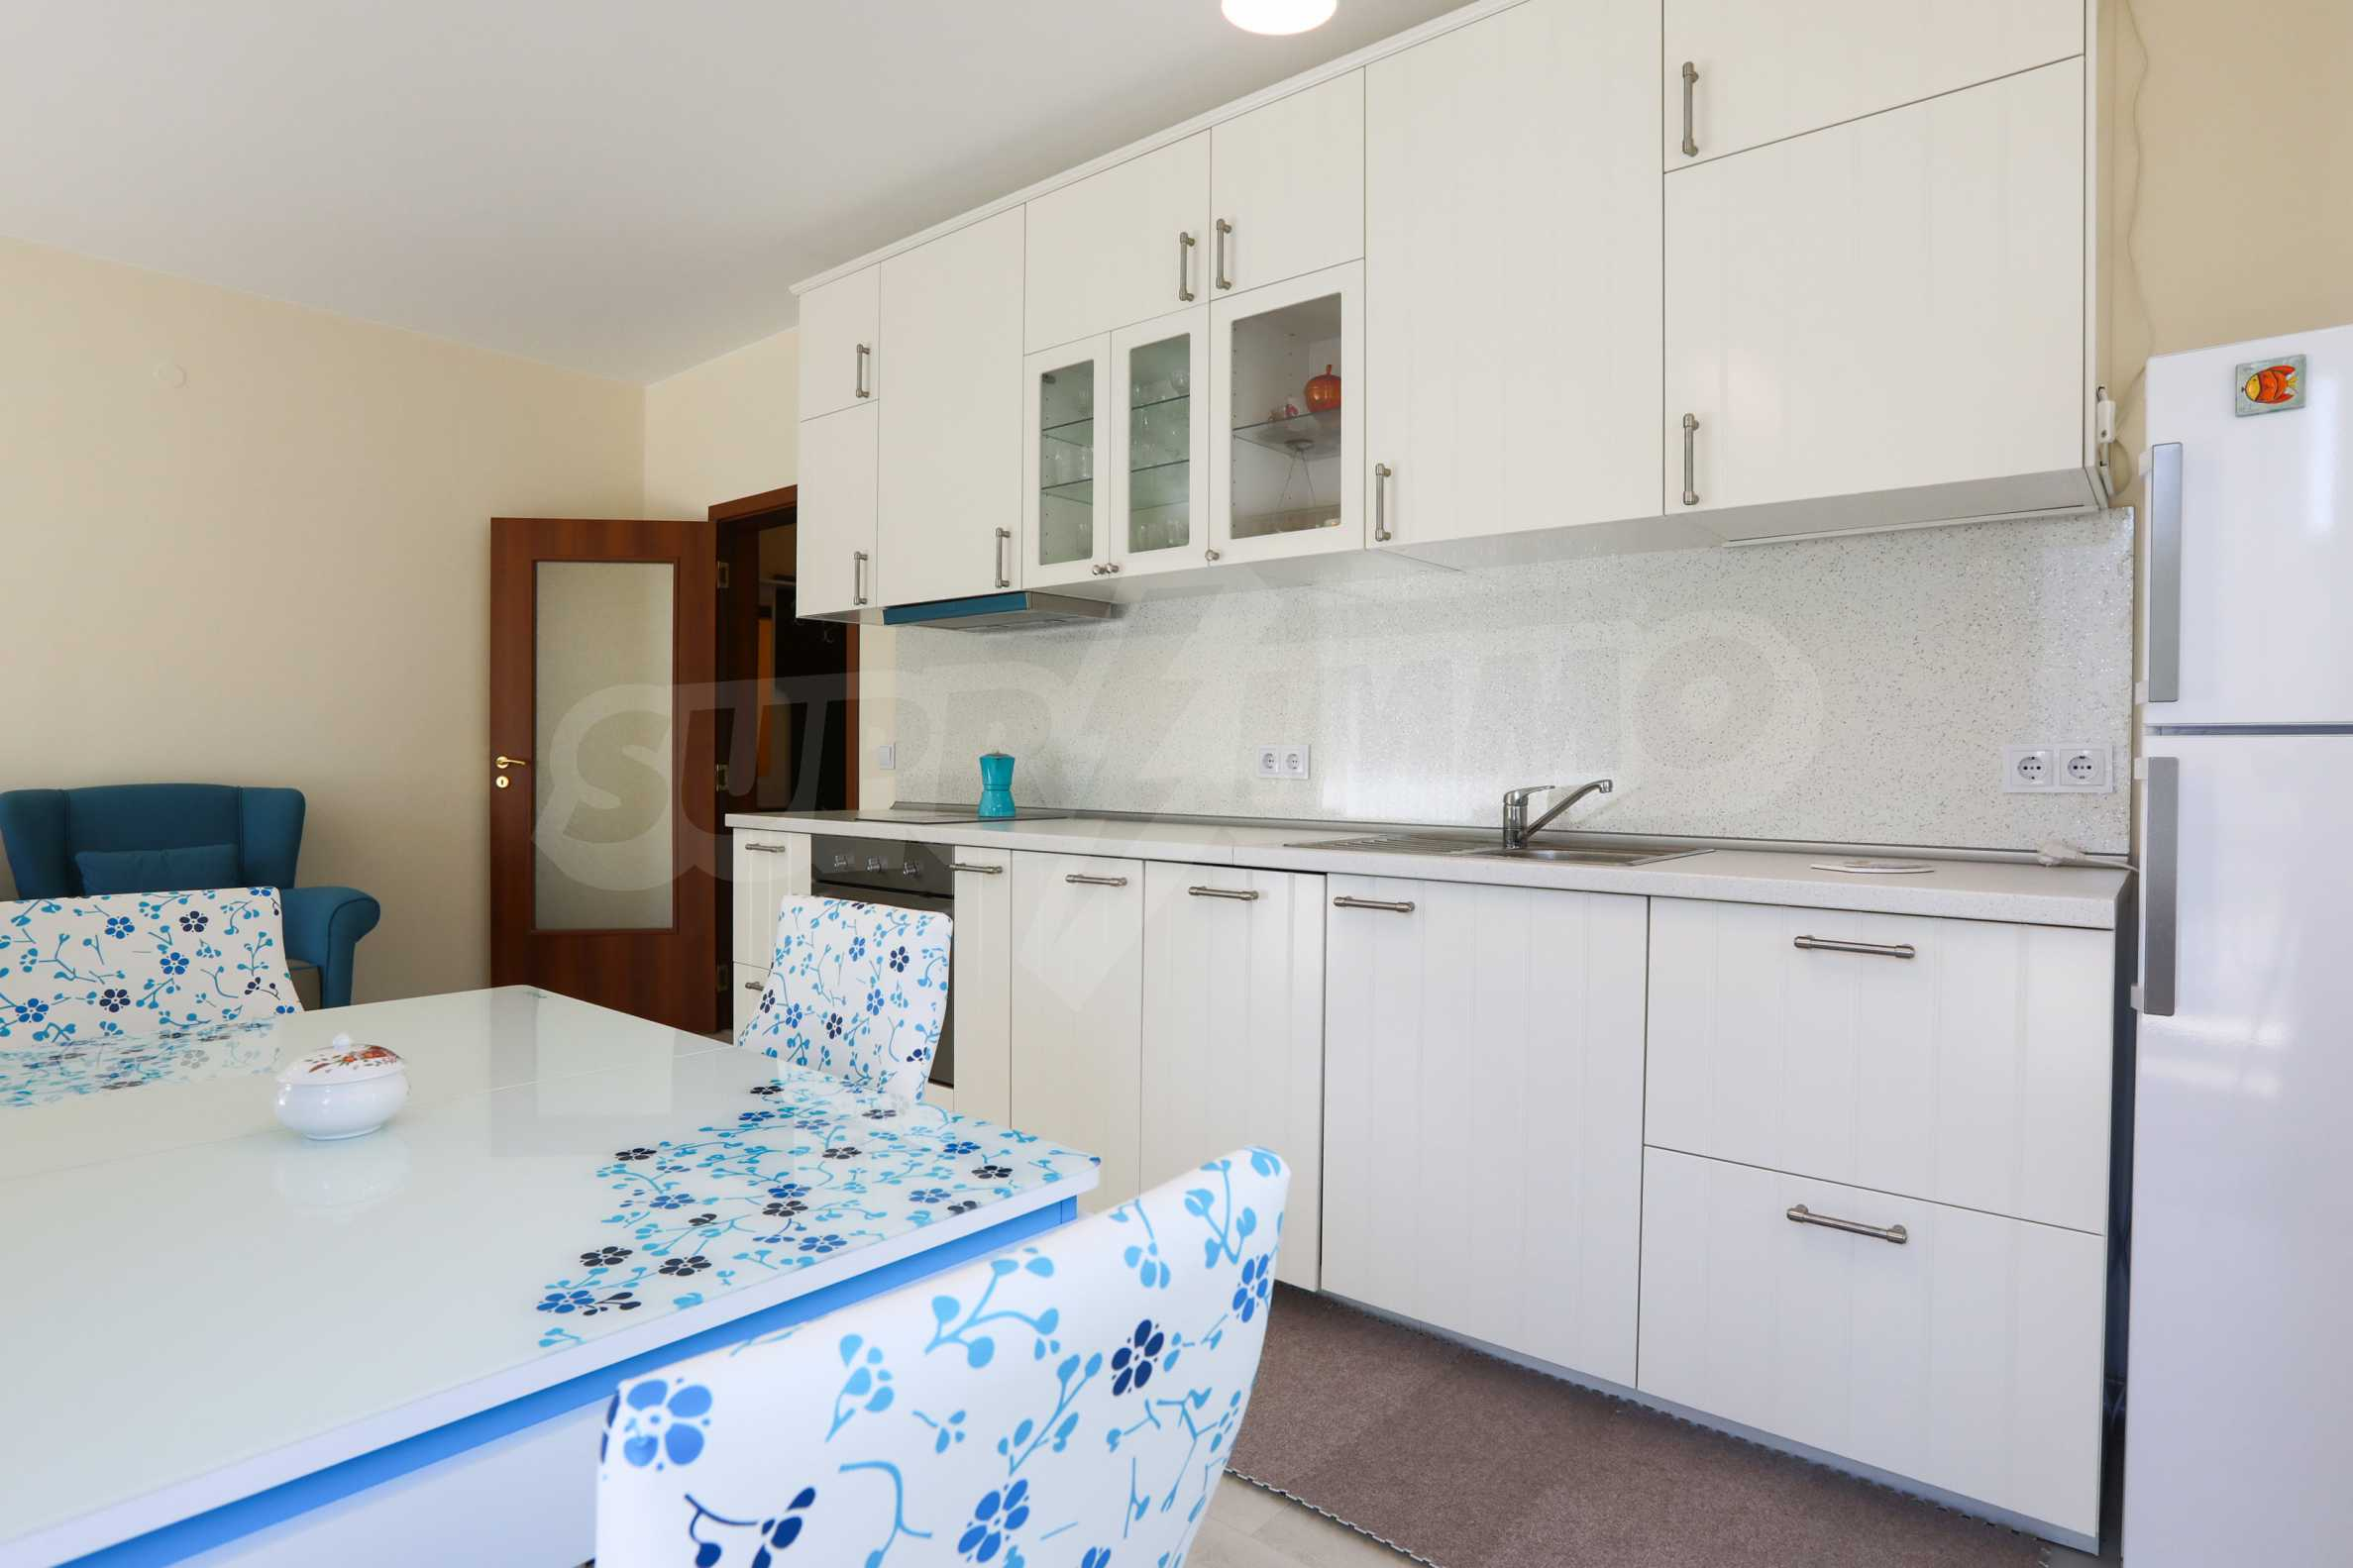 1-bedroom apartment in Sofia 2